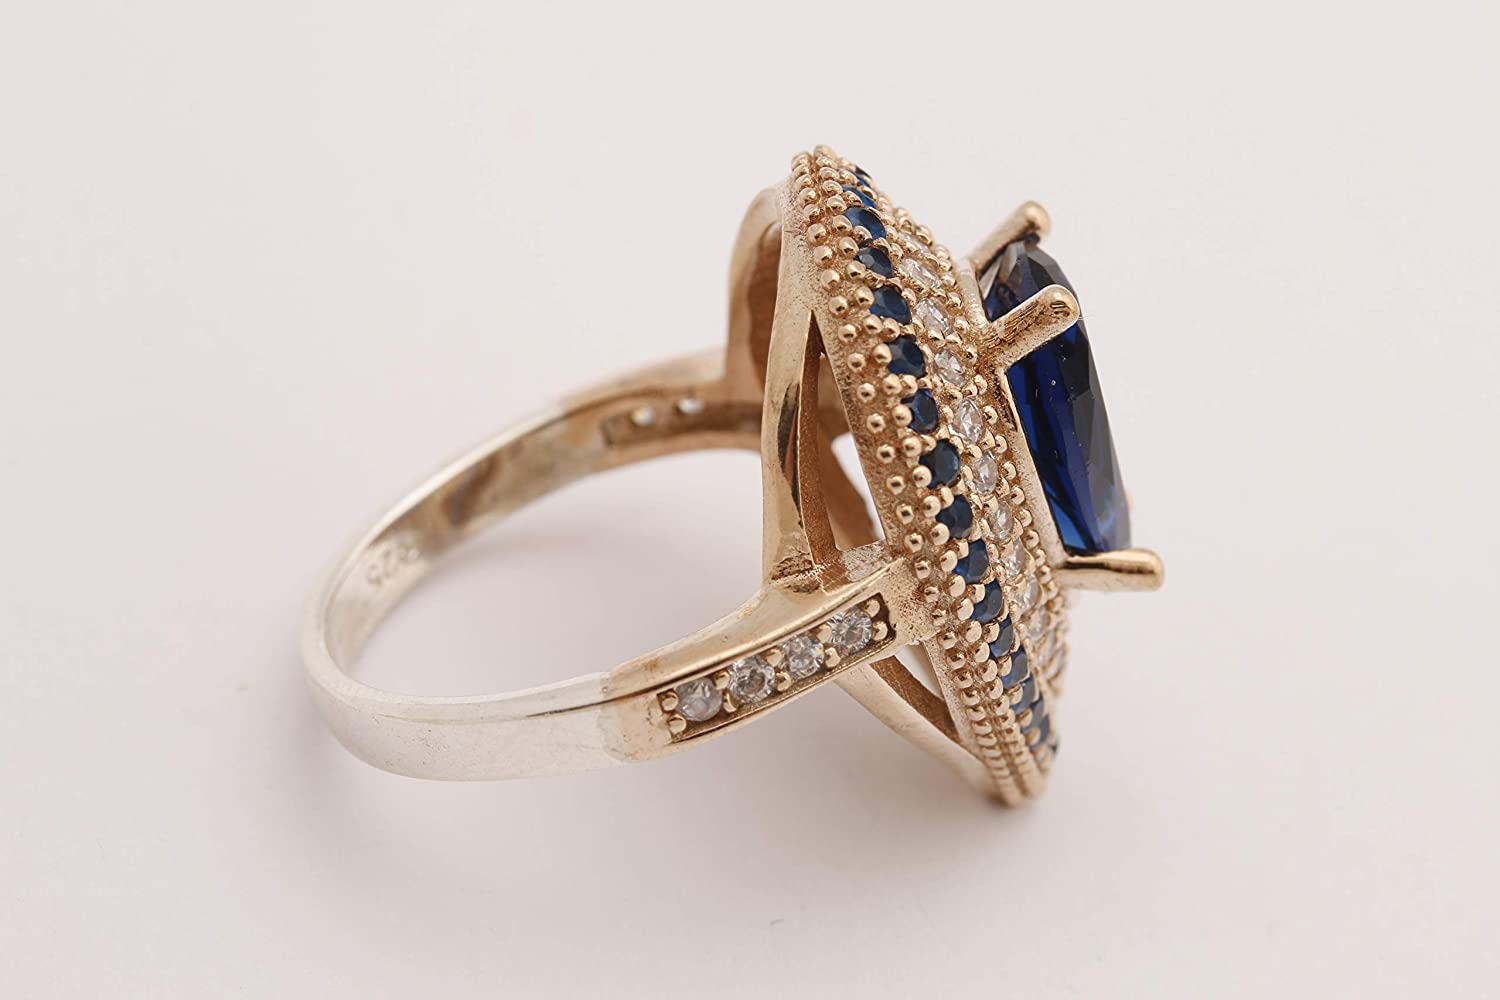 Turkish Handmade Jewelry Small Drop Shape Pear Cut Sapphire and Round Cut Topaz 925 Sterling Silver Ring Size All